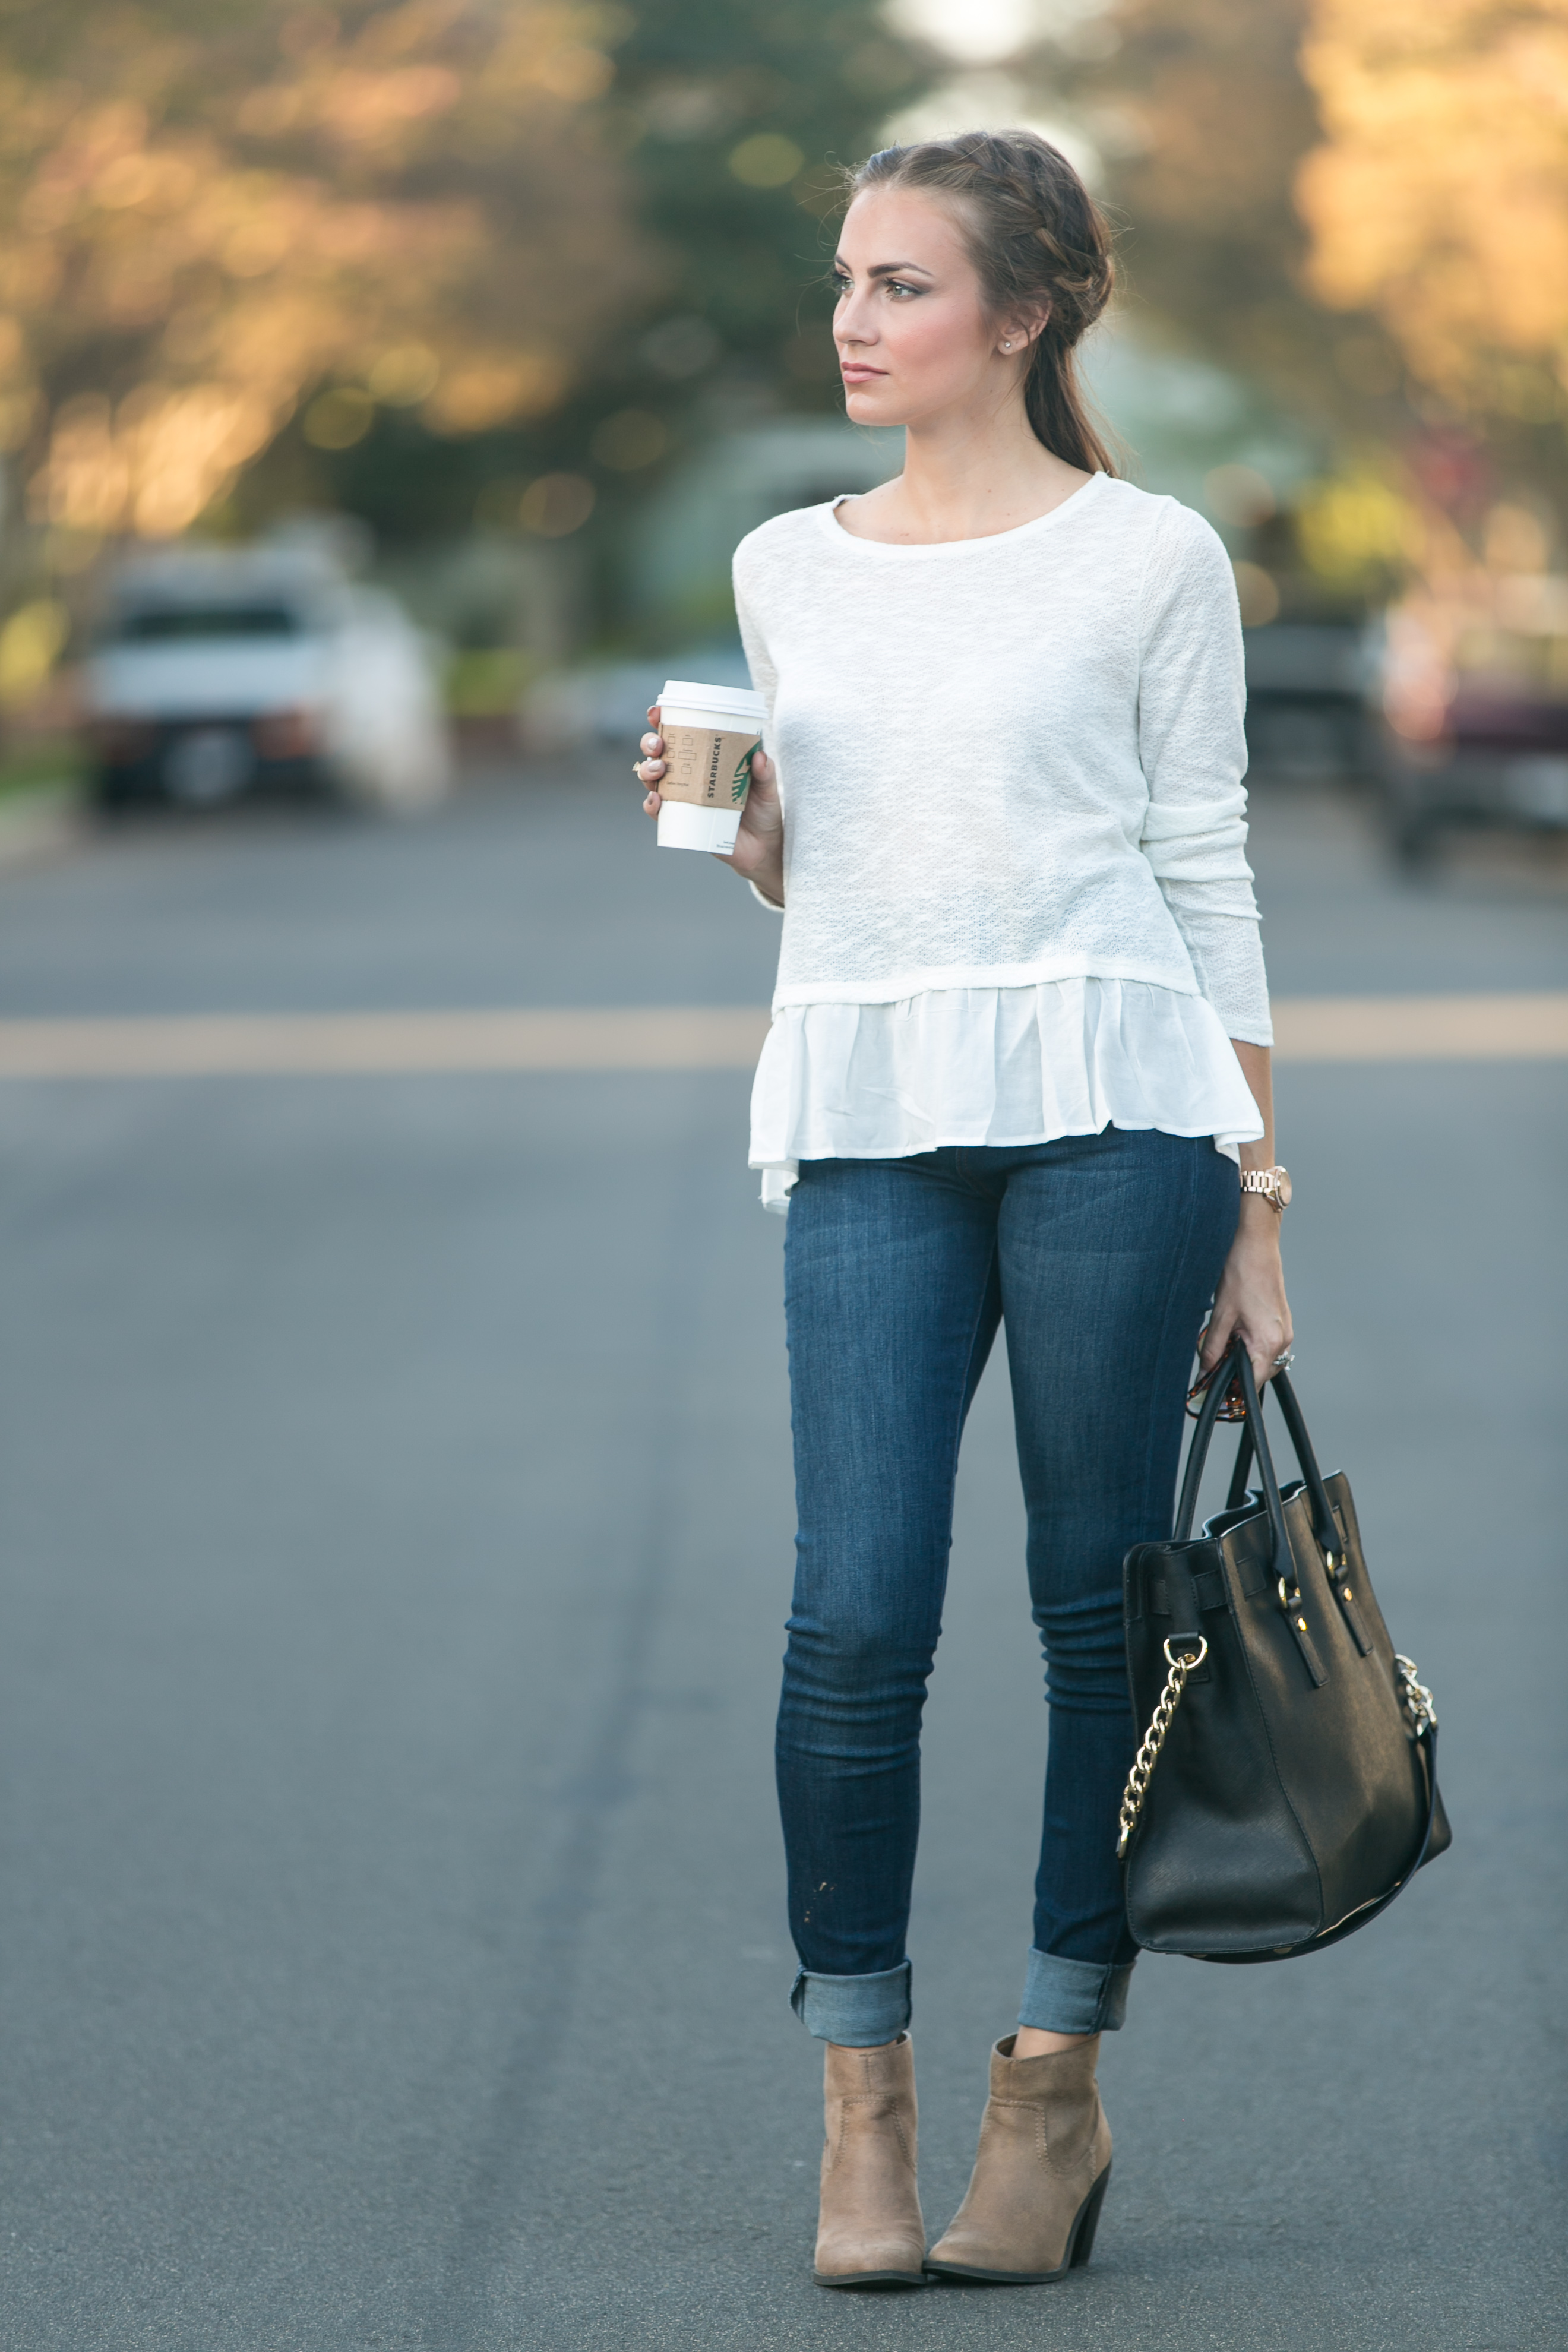 ruffle hem forever 21 sweater fall outfit angela lanter hello gorgeous